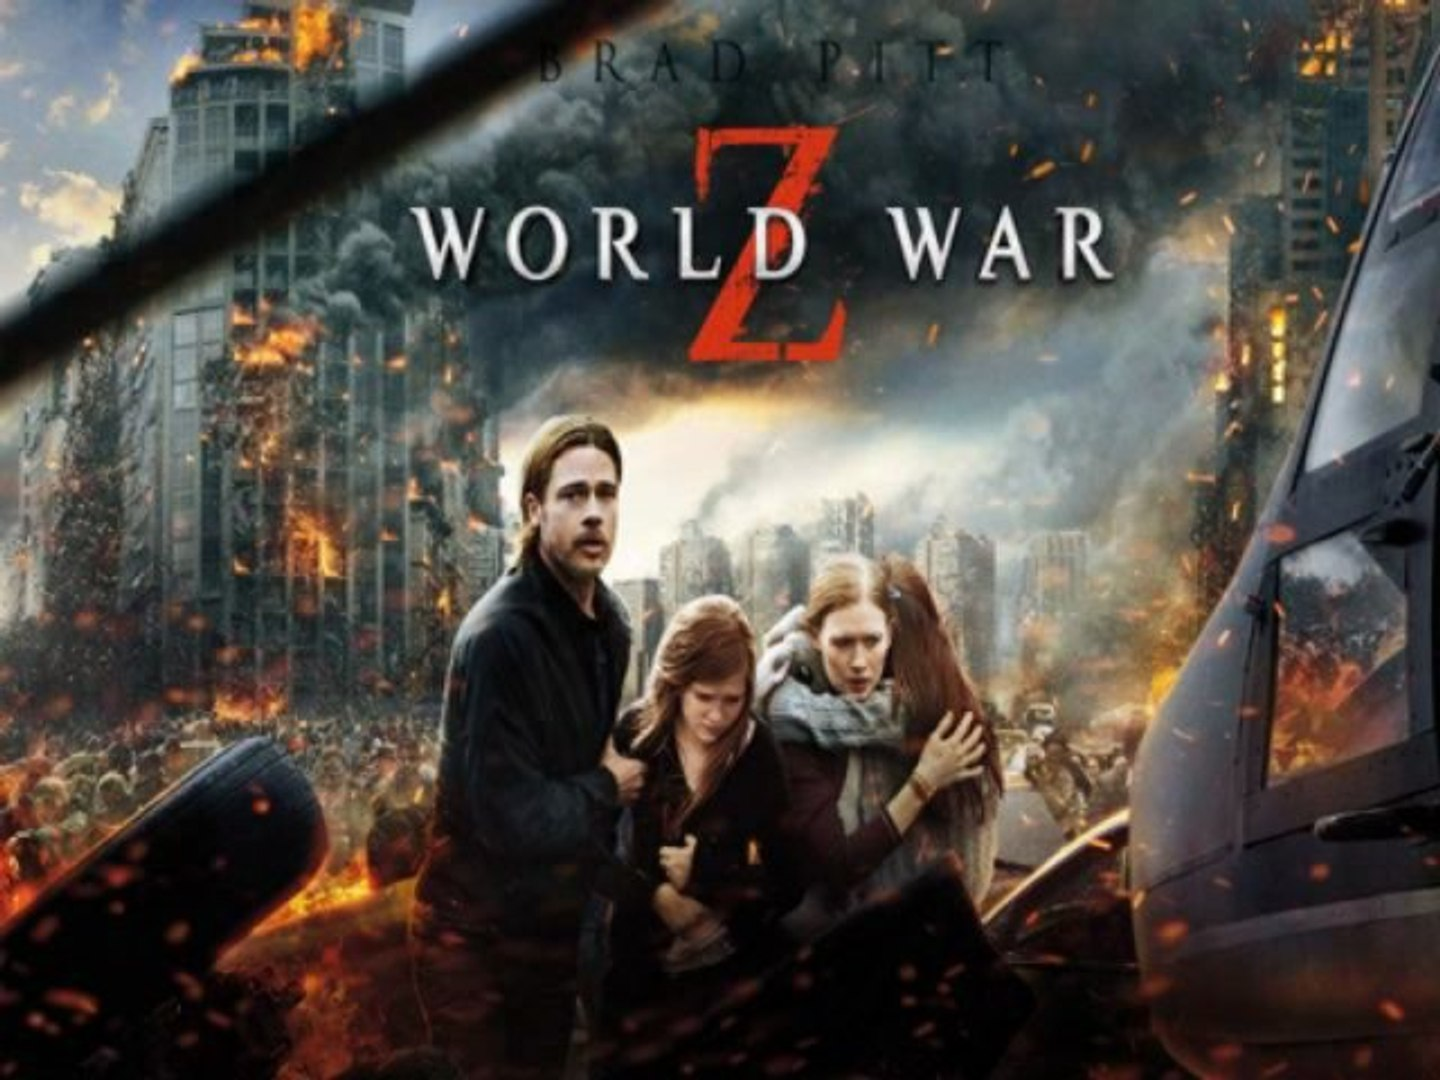 World War Z StreaMING Movie Online Movie Free Putlocker pcTV ^_^ [watch movie youtube]